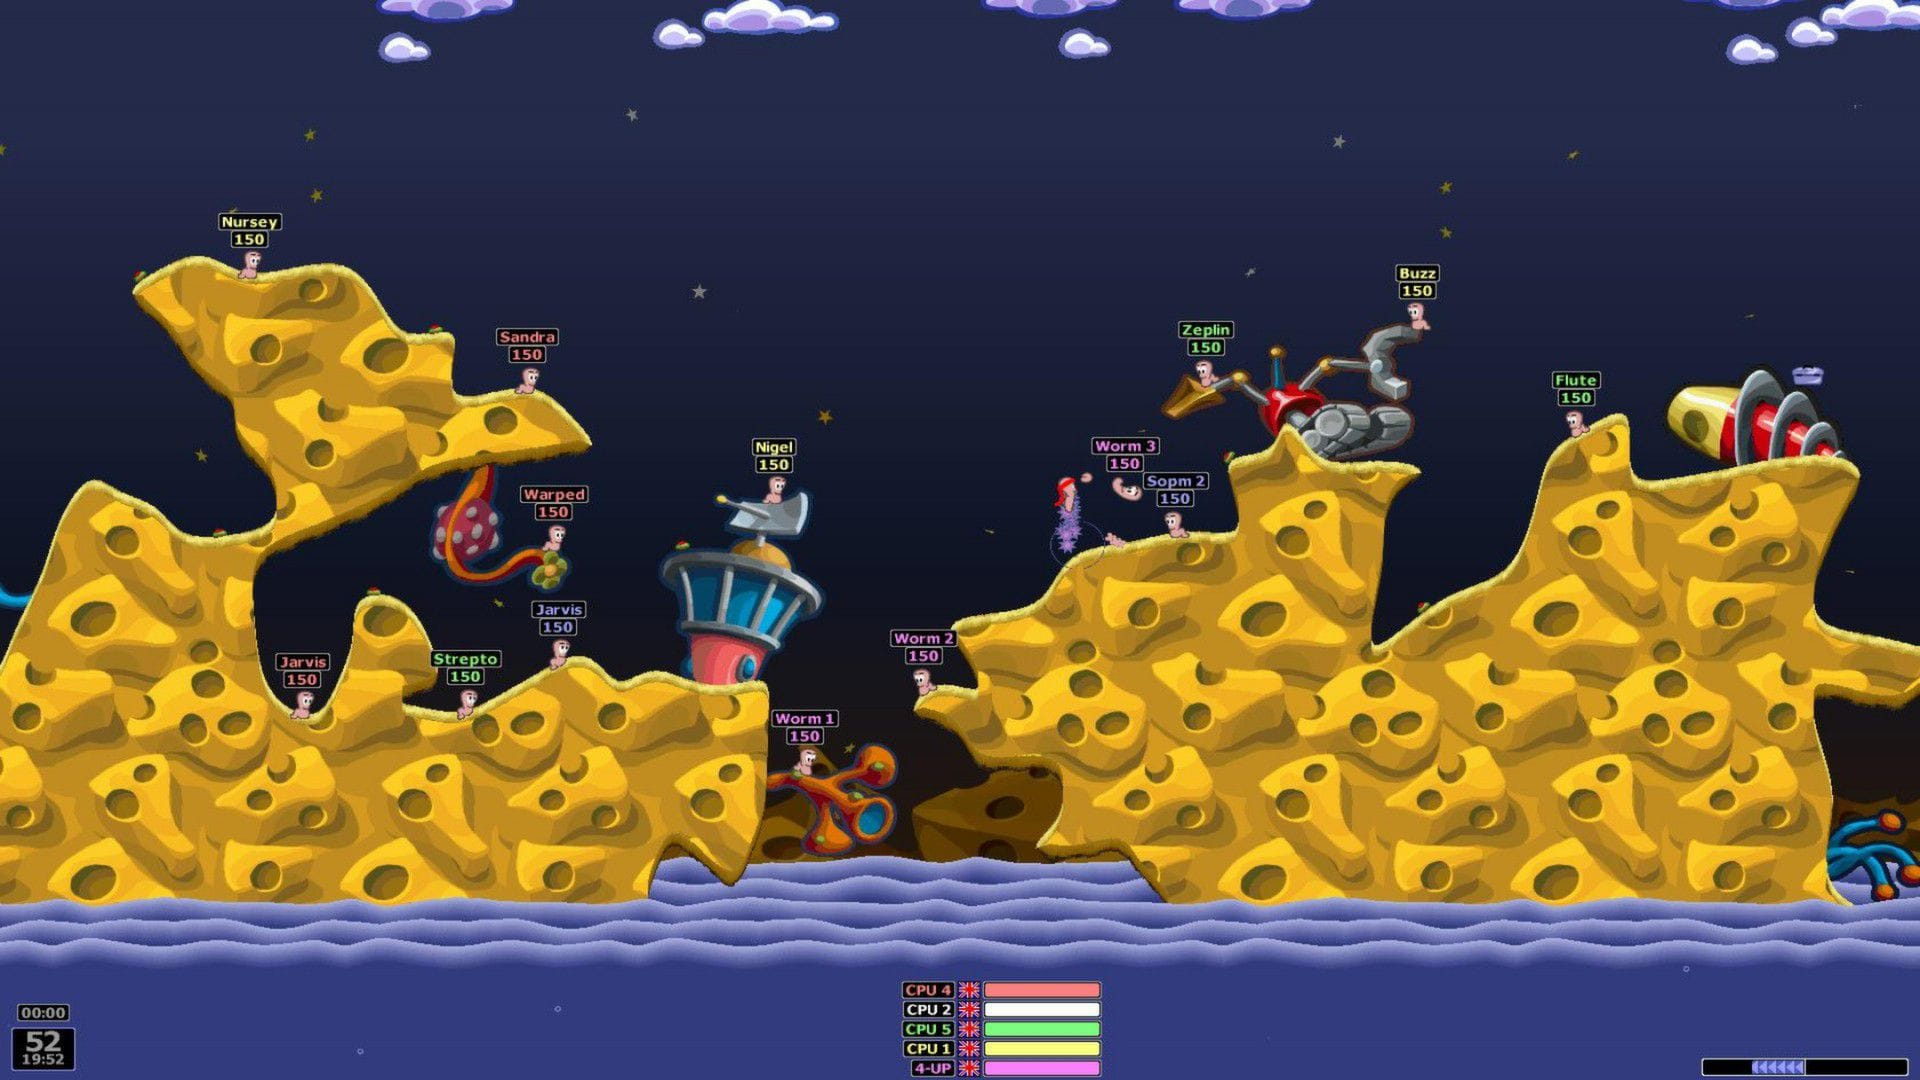 A screenshot from the game Worms: Armageddon.